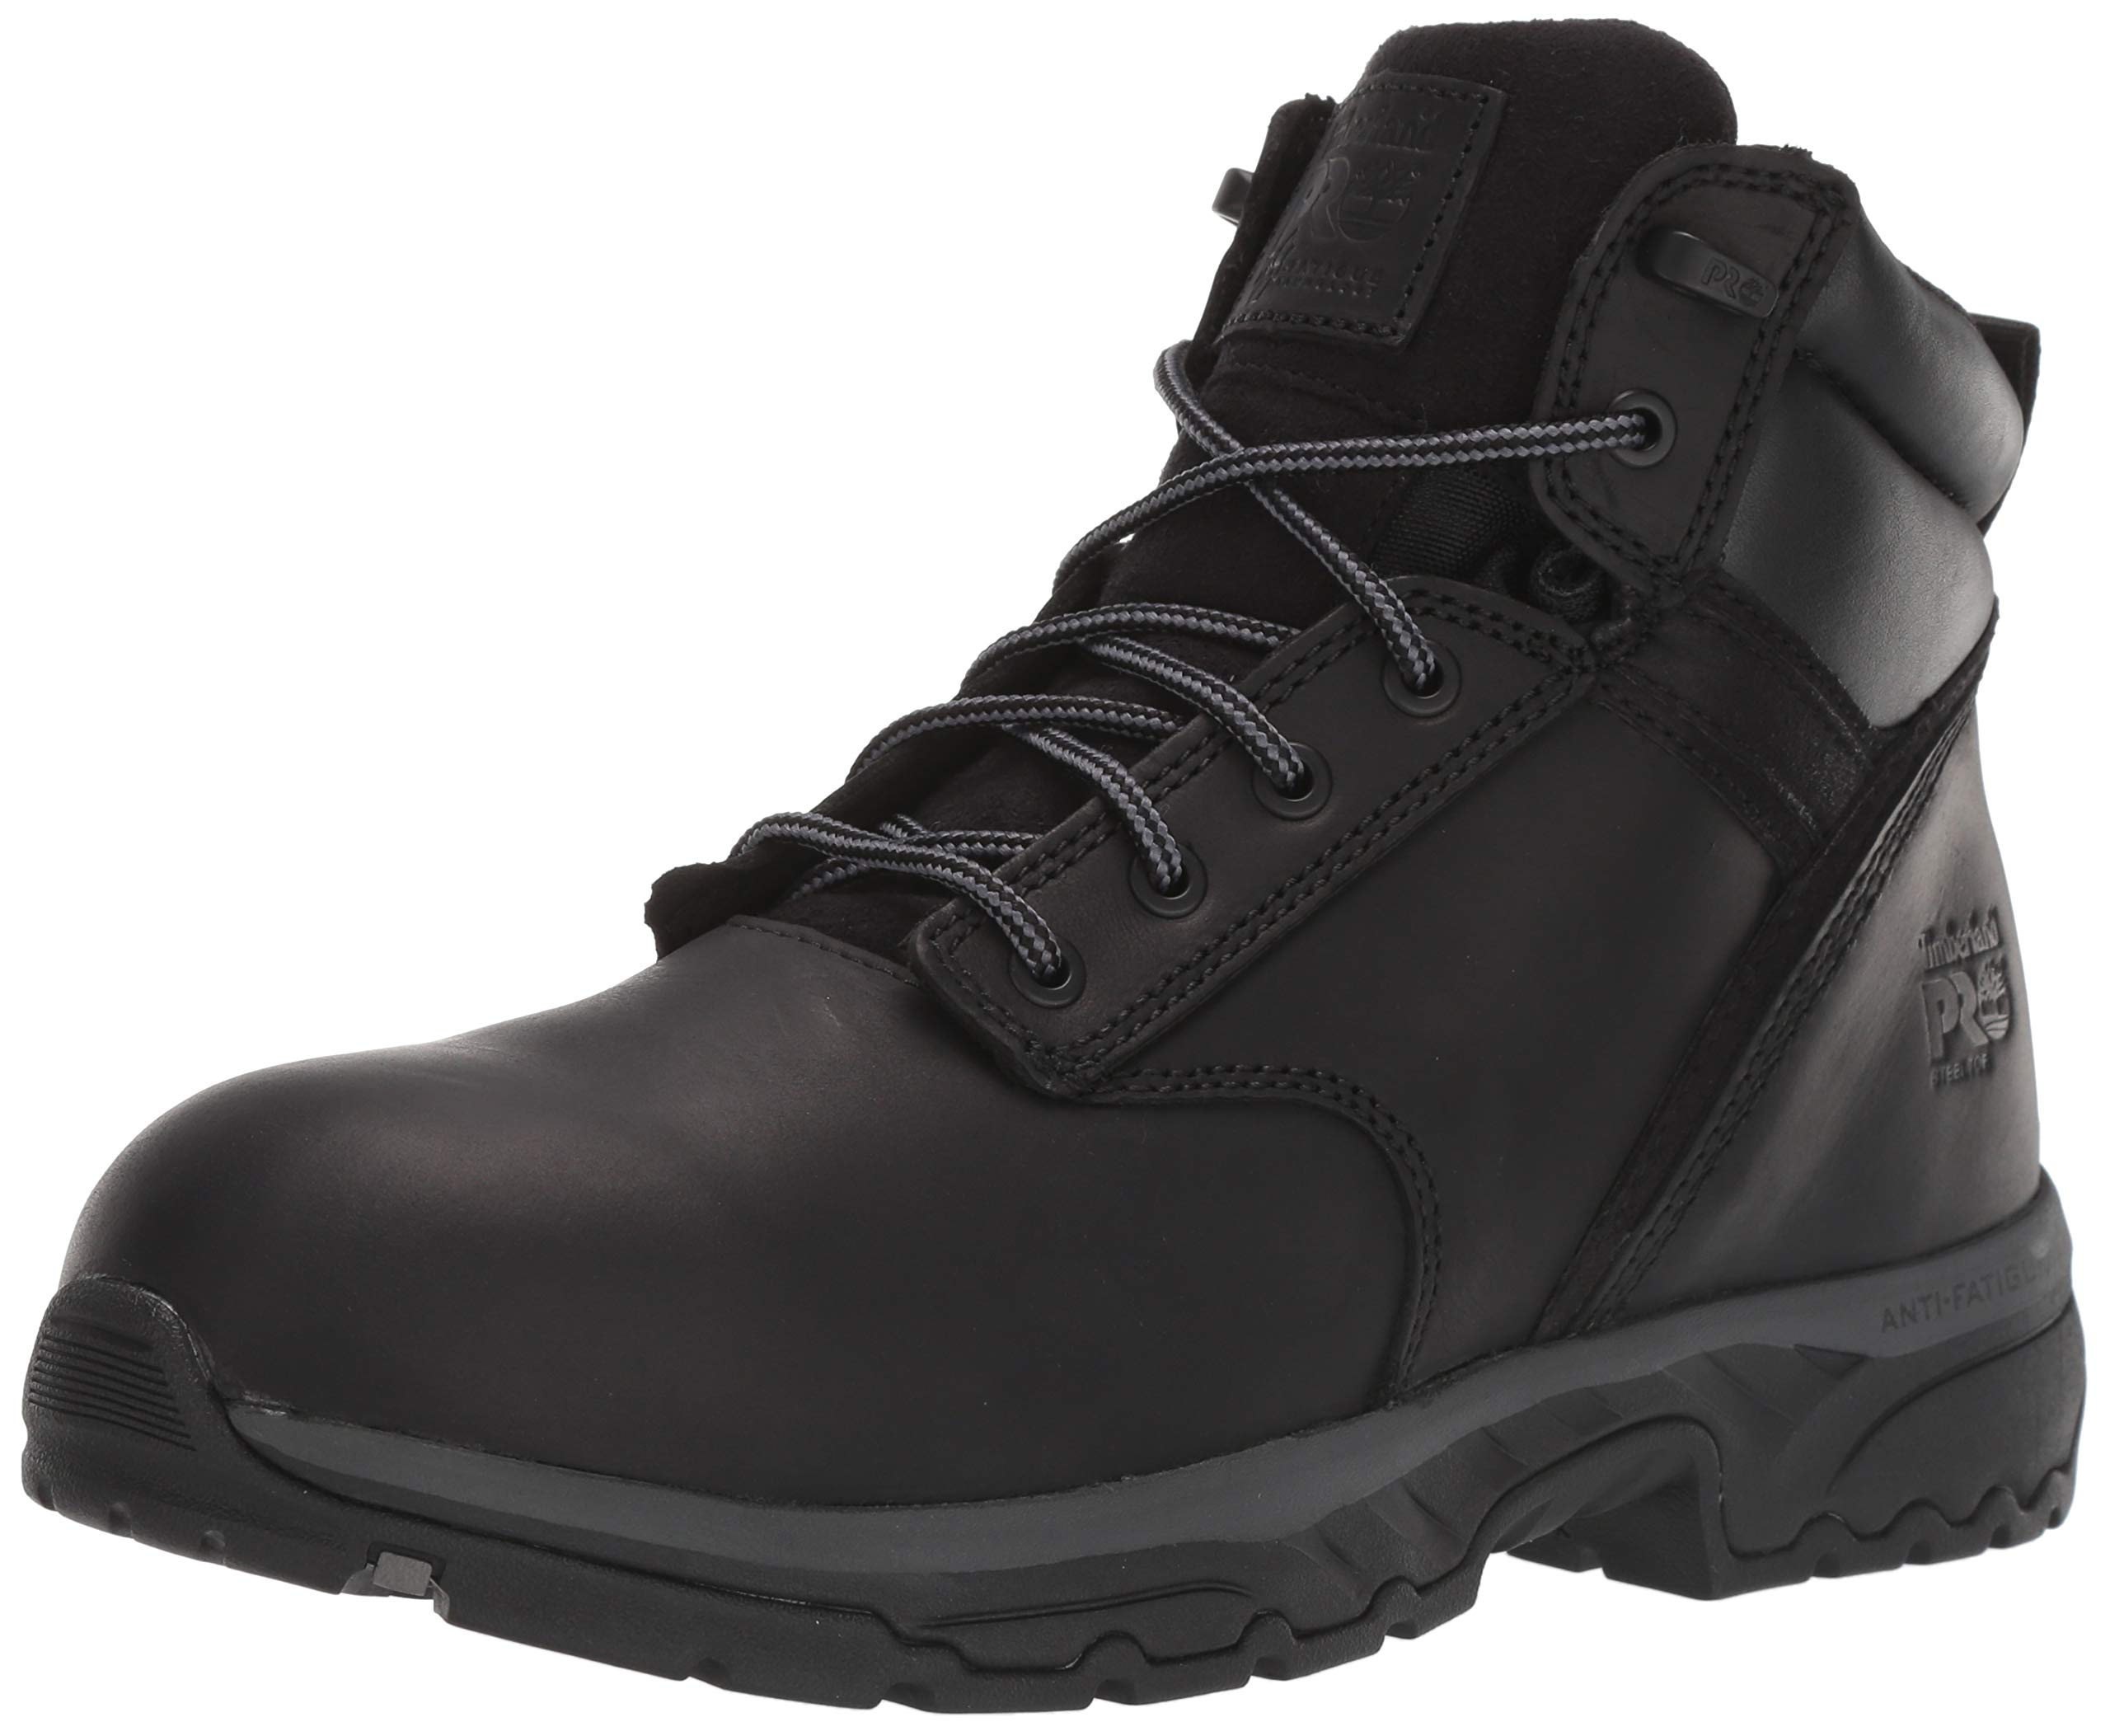 Timberland PRO Men's Jigsaw 6'' Steel Toe Industrial Boot, Black, 10.5 M US by Timberland PRO